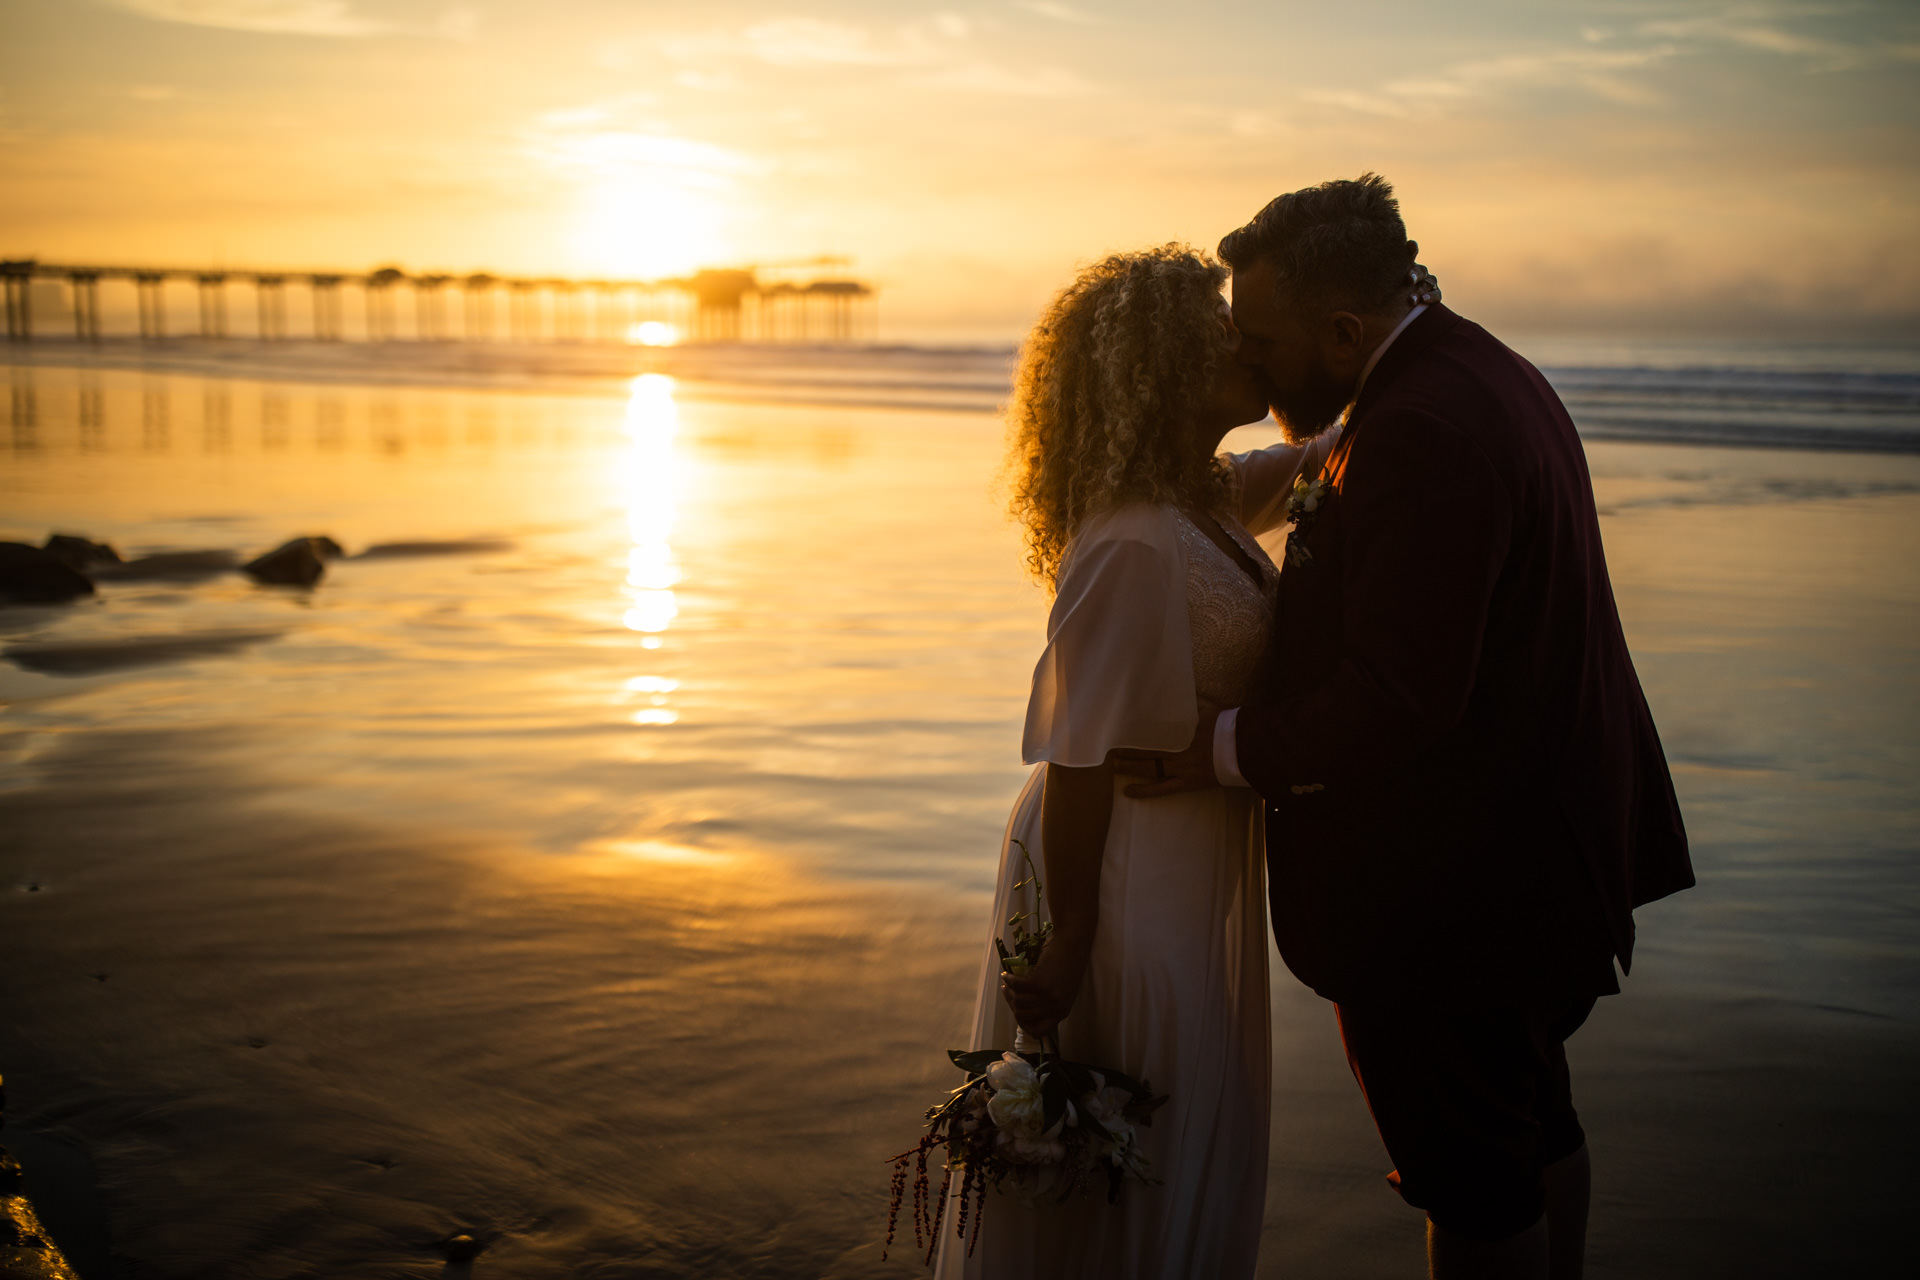 Gerusa Eric La Jolla San Diego Beach Wedding Sunset by Faces Photography